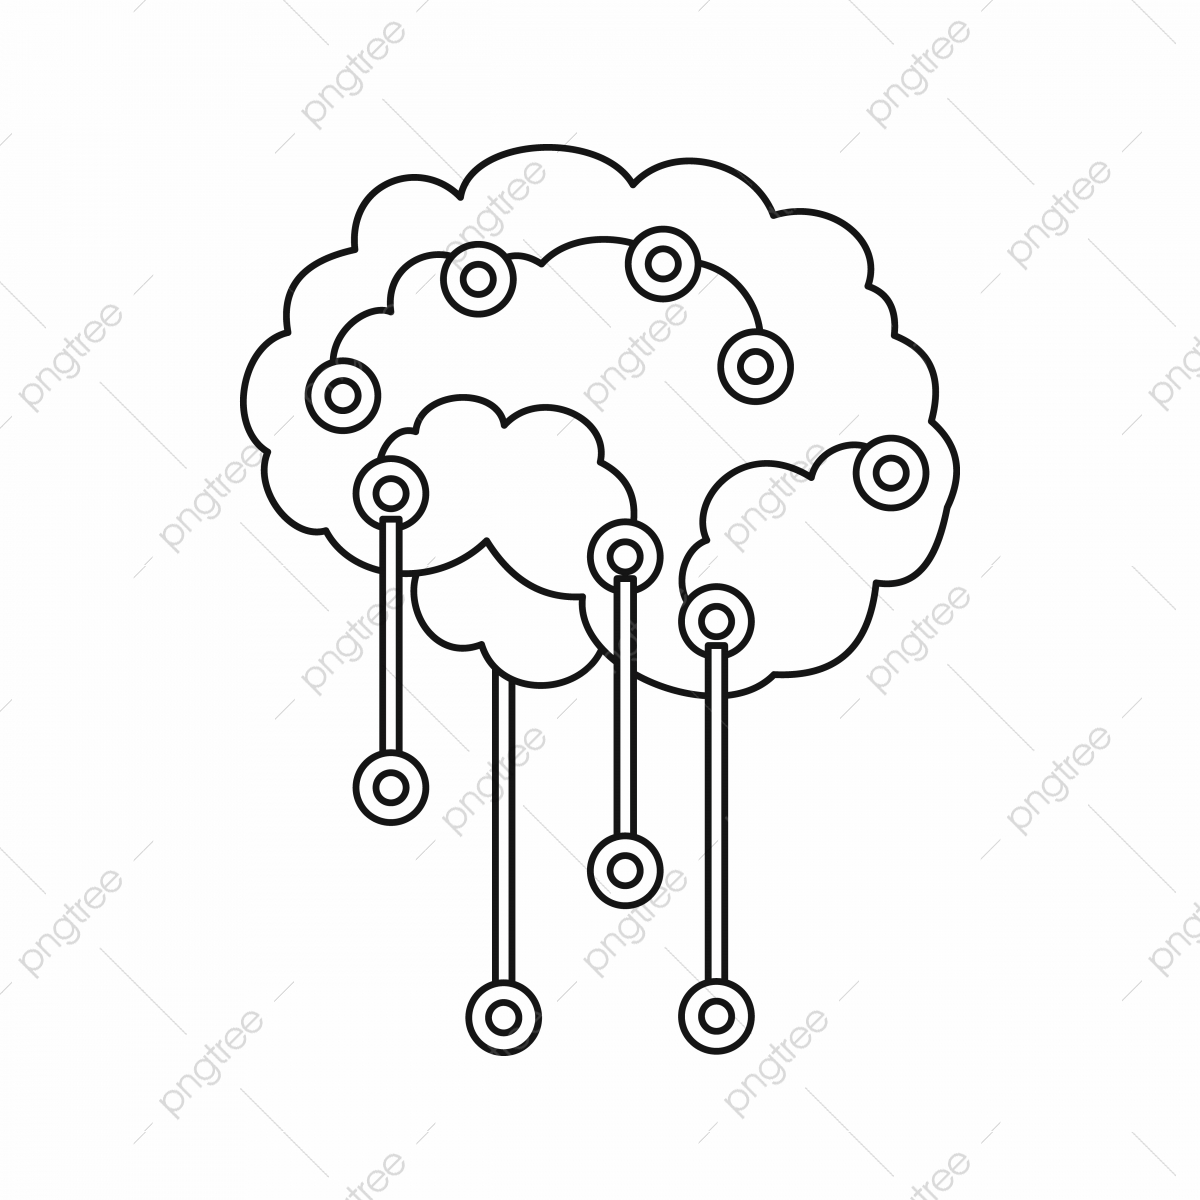 Sensors On Human Brain Icon Outline Style Brain Icons Human Icons Style Icons Png And Vector With Transparent Background For Free Download Thin line black bored human icon, flat vector simple element illustration from editable feelings. https pngtree com freepng sensors on human brain icon outline style 5146958 html